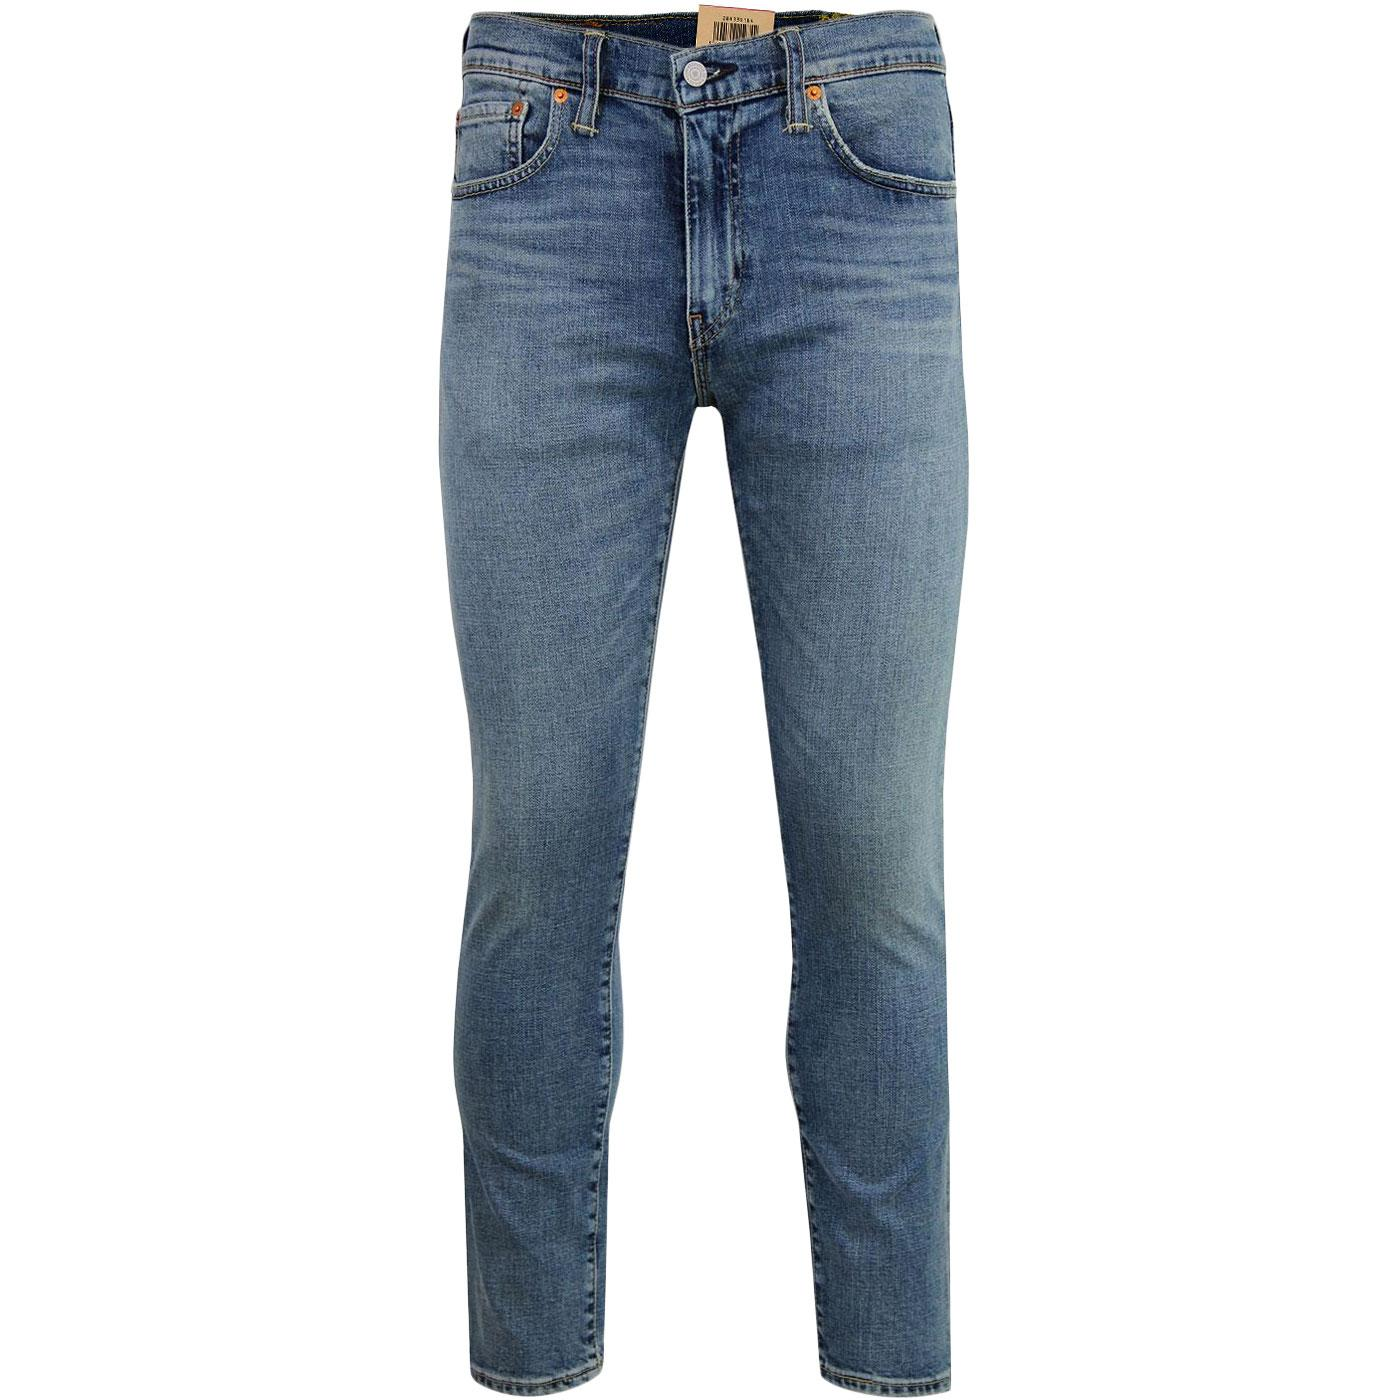 LEVI'S 512 Slim Taper Fit Denim Jeans - RIVERCREEK